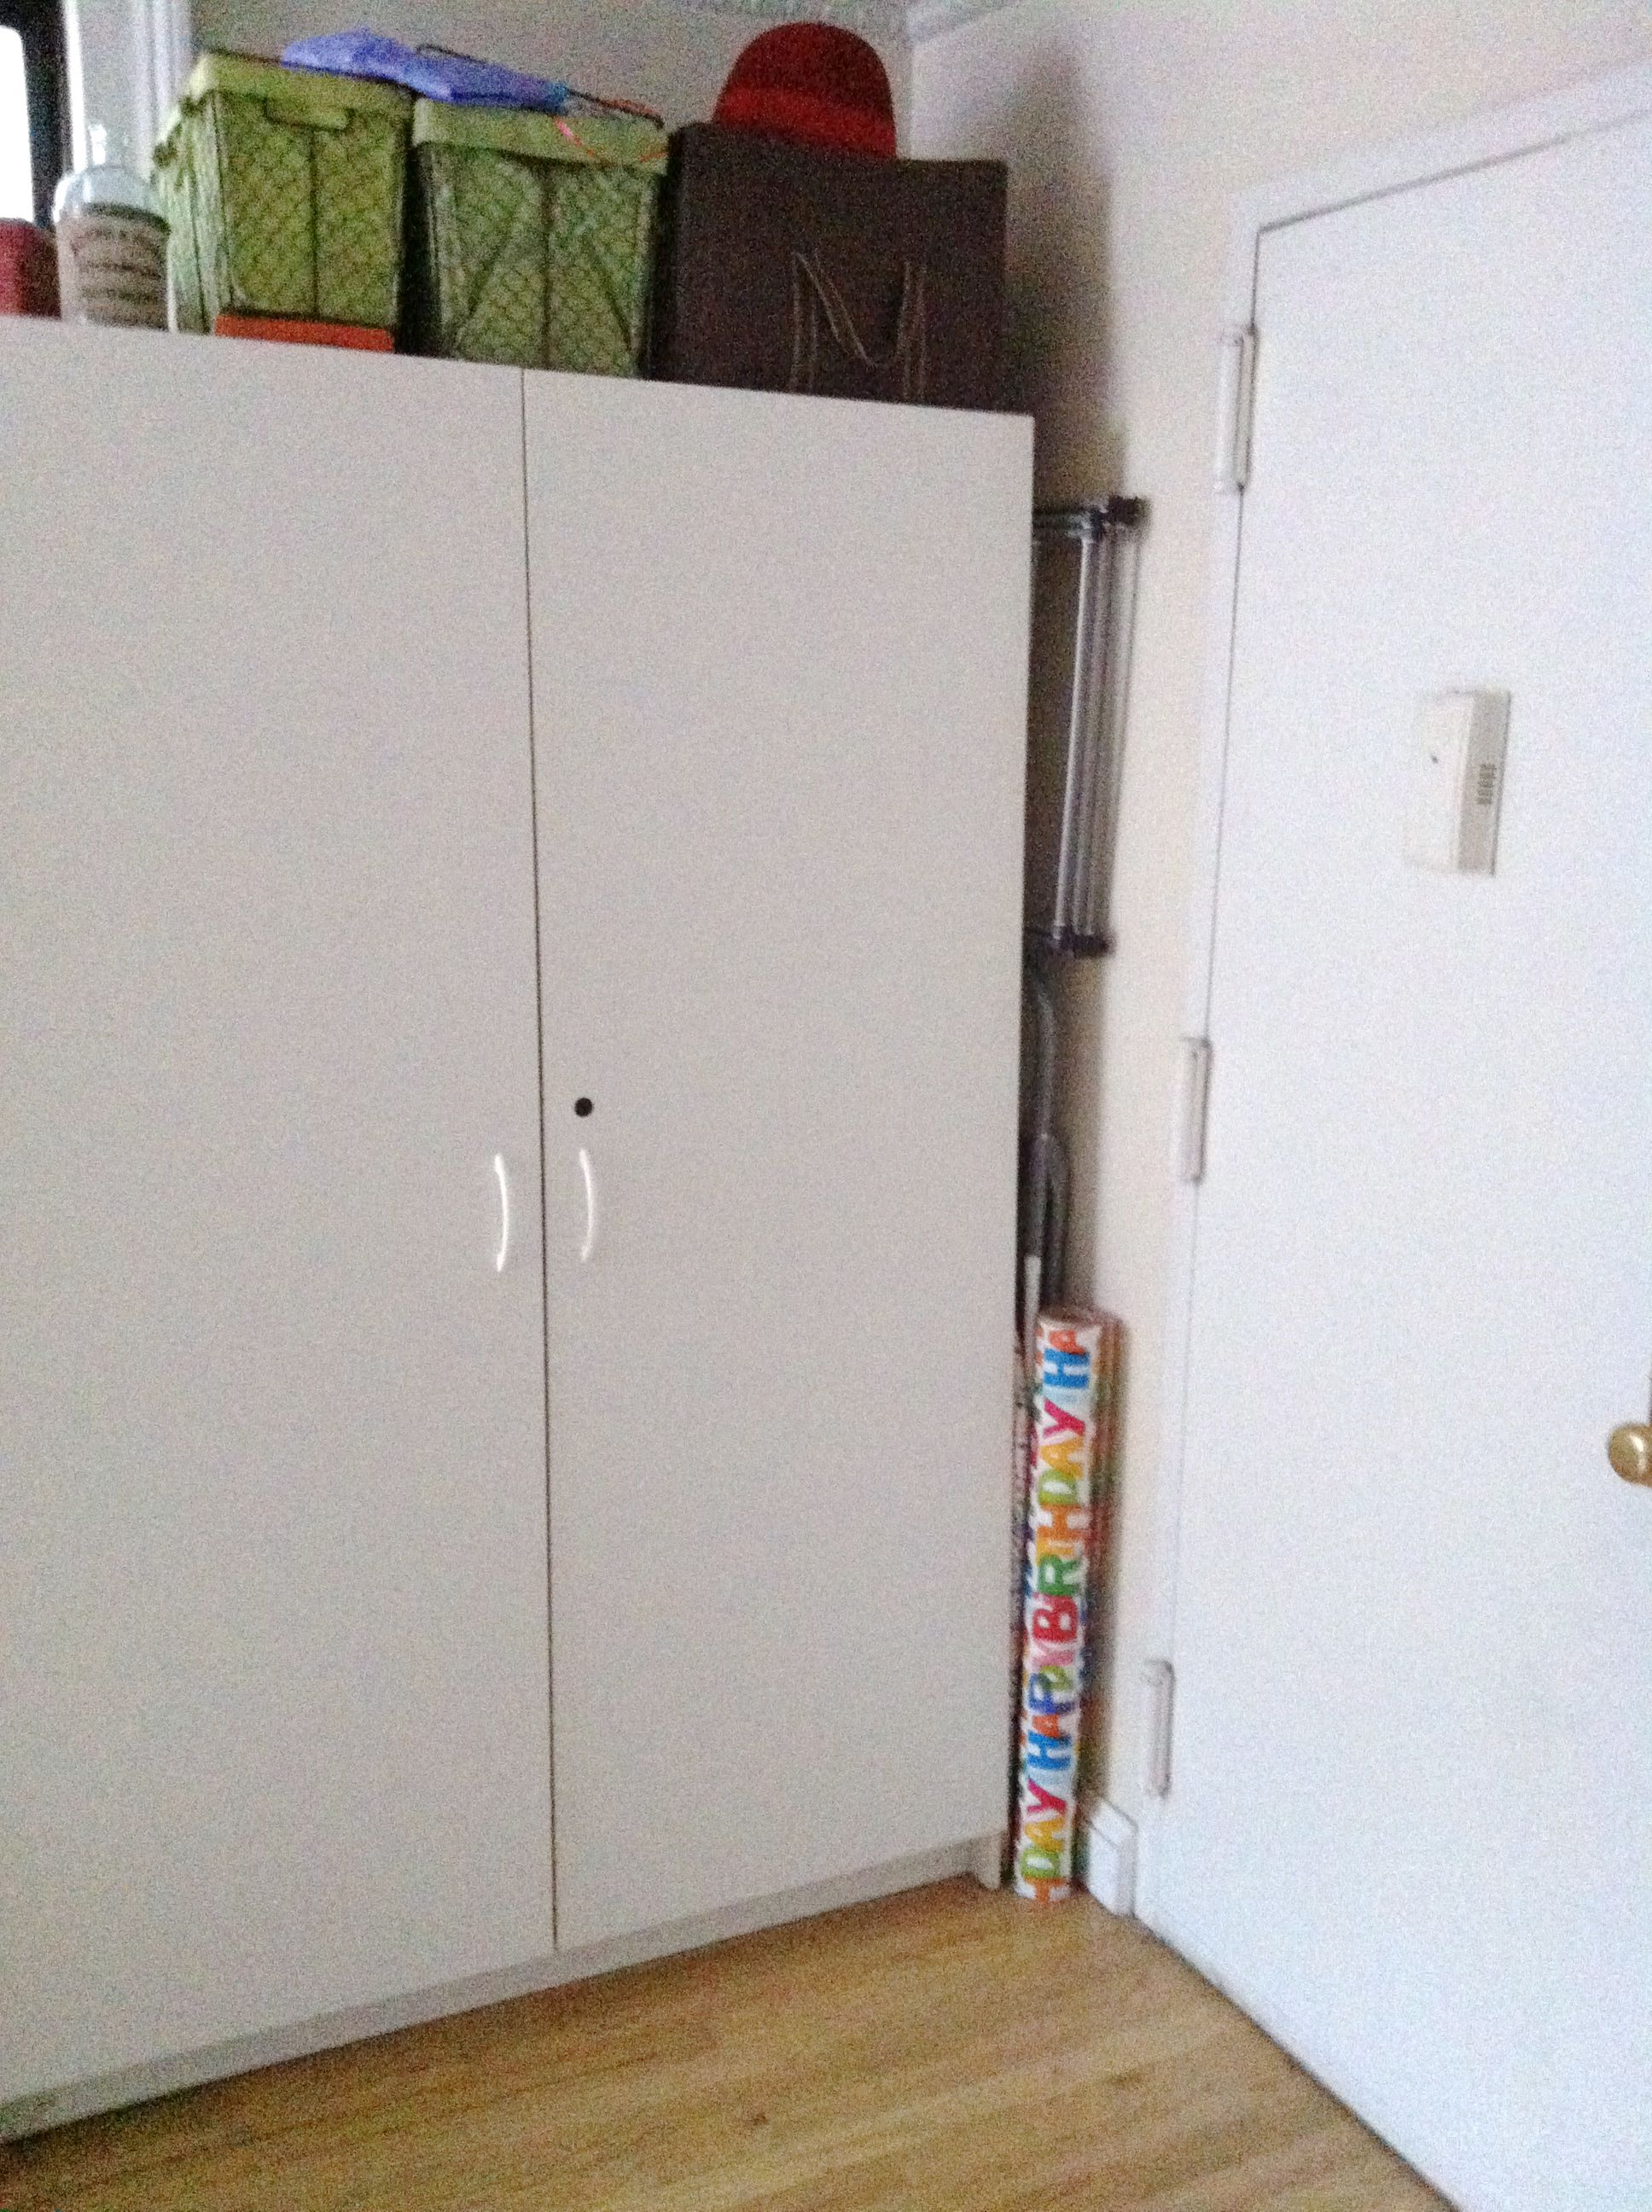 """BEFORE: The beast. This is/was the only """"closet"""" that the new apartment had. But it created a problem for us in that it was right where our eating area needed to be. So we had the landlord take it away. Now we have to carve out a bit of closet space elsewhere in the apartment."""